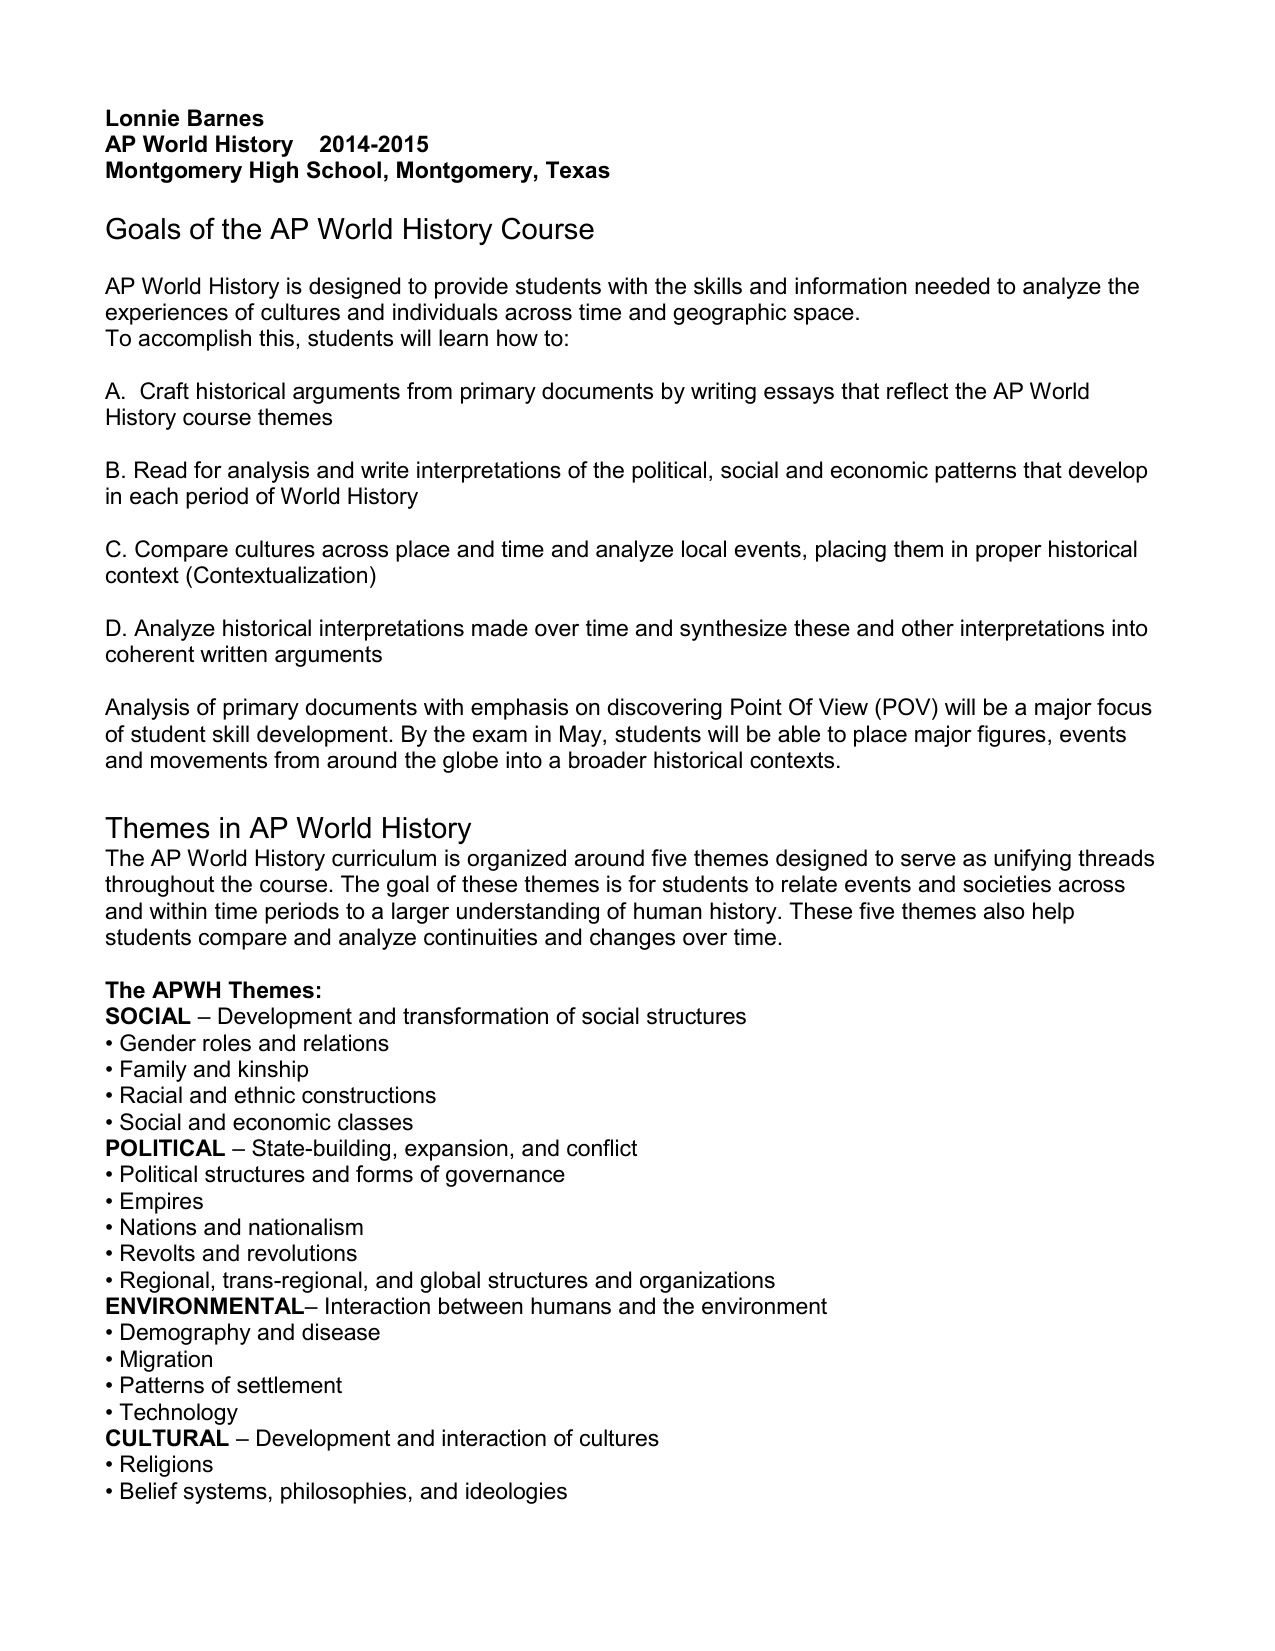 ap world history ccot essay 2010